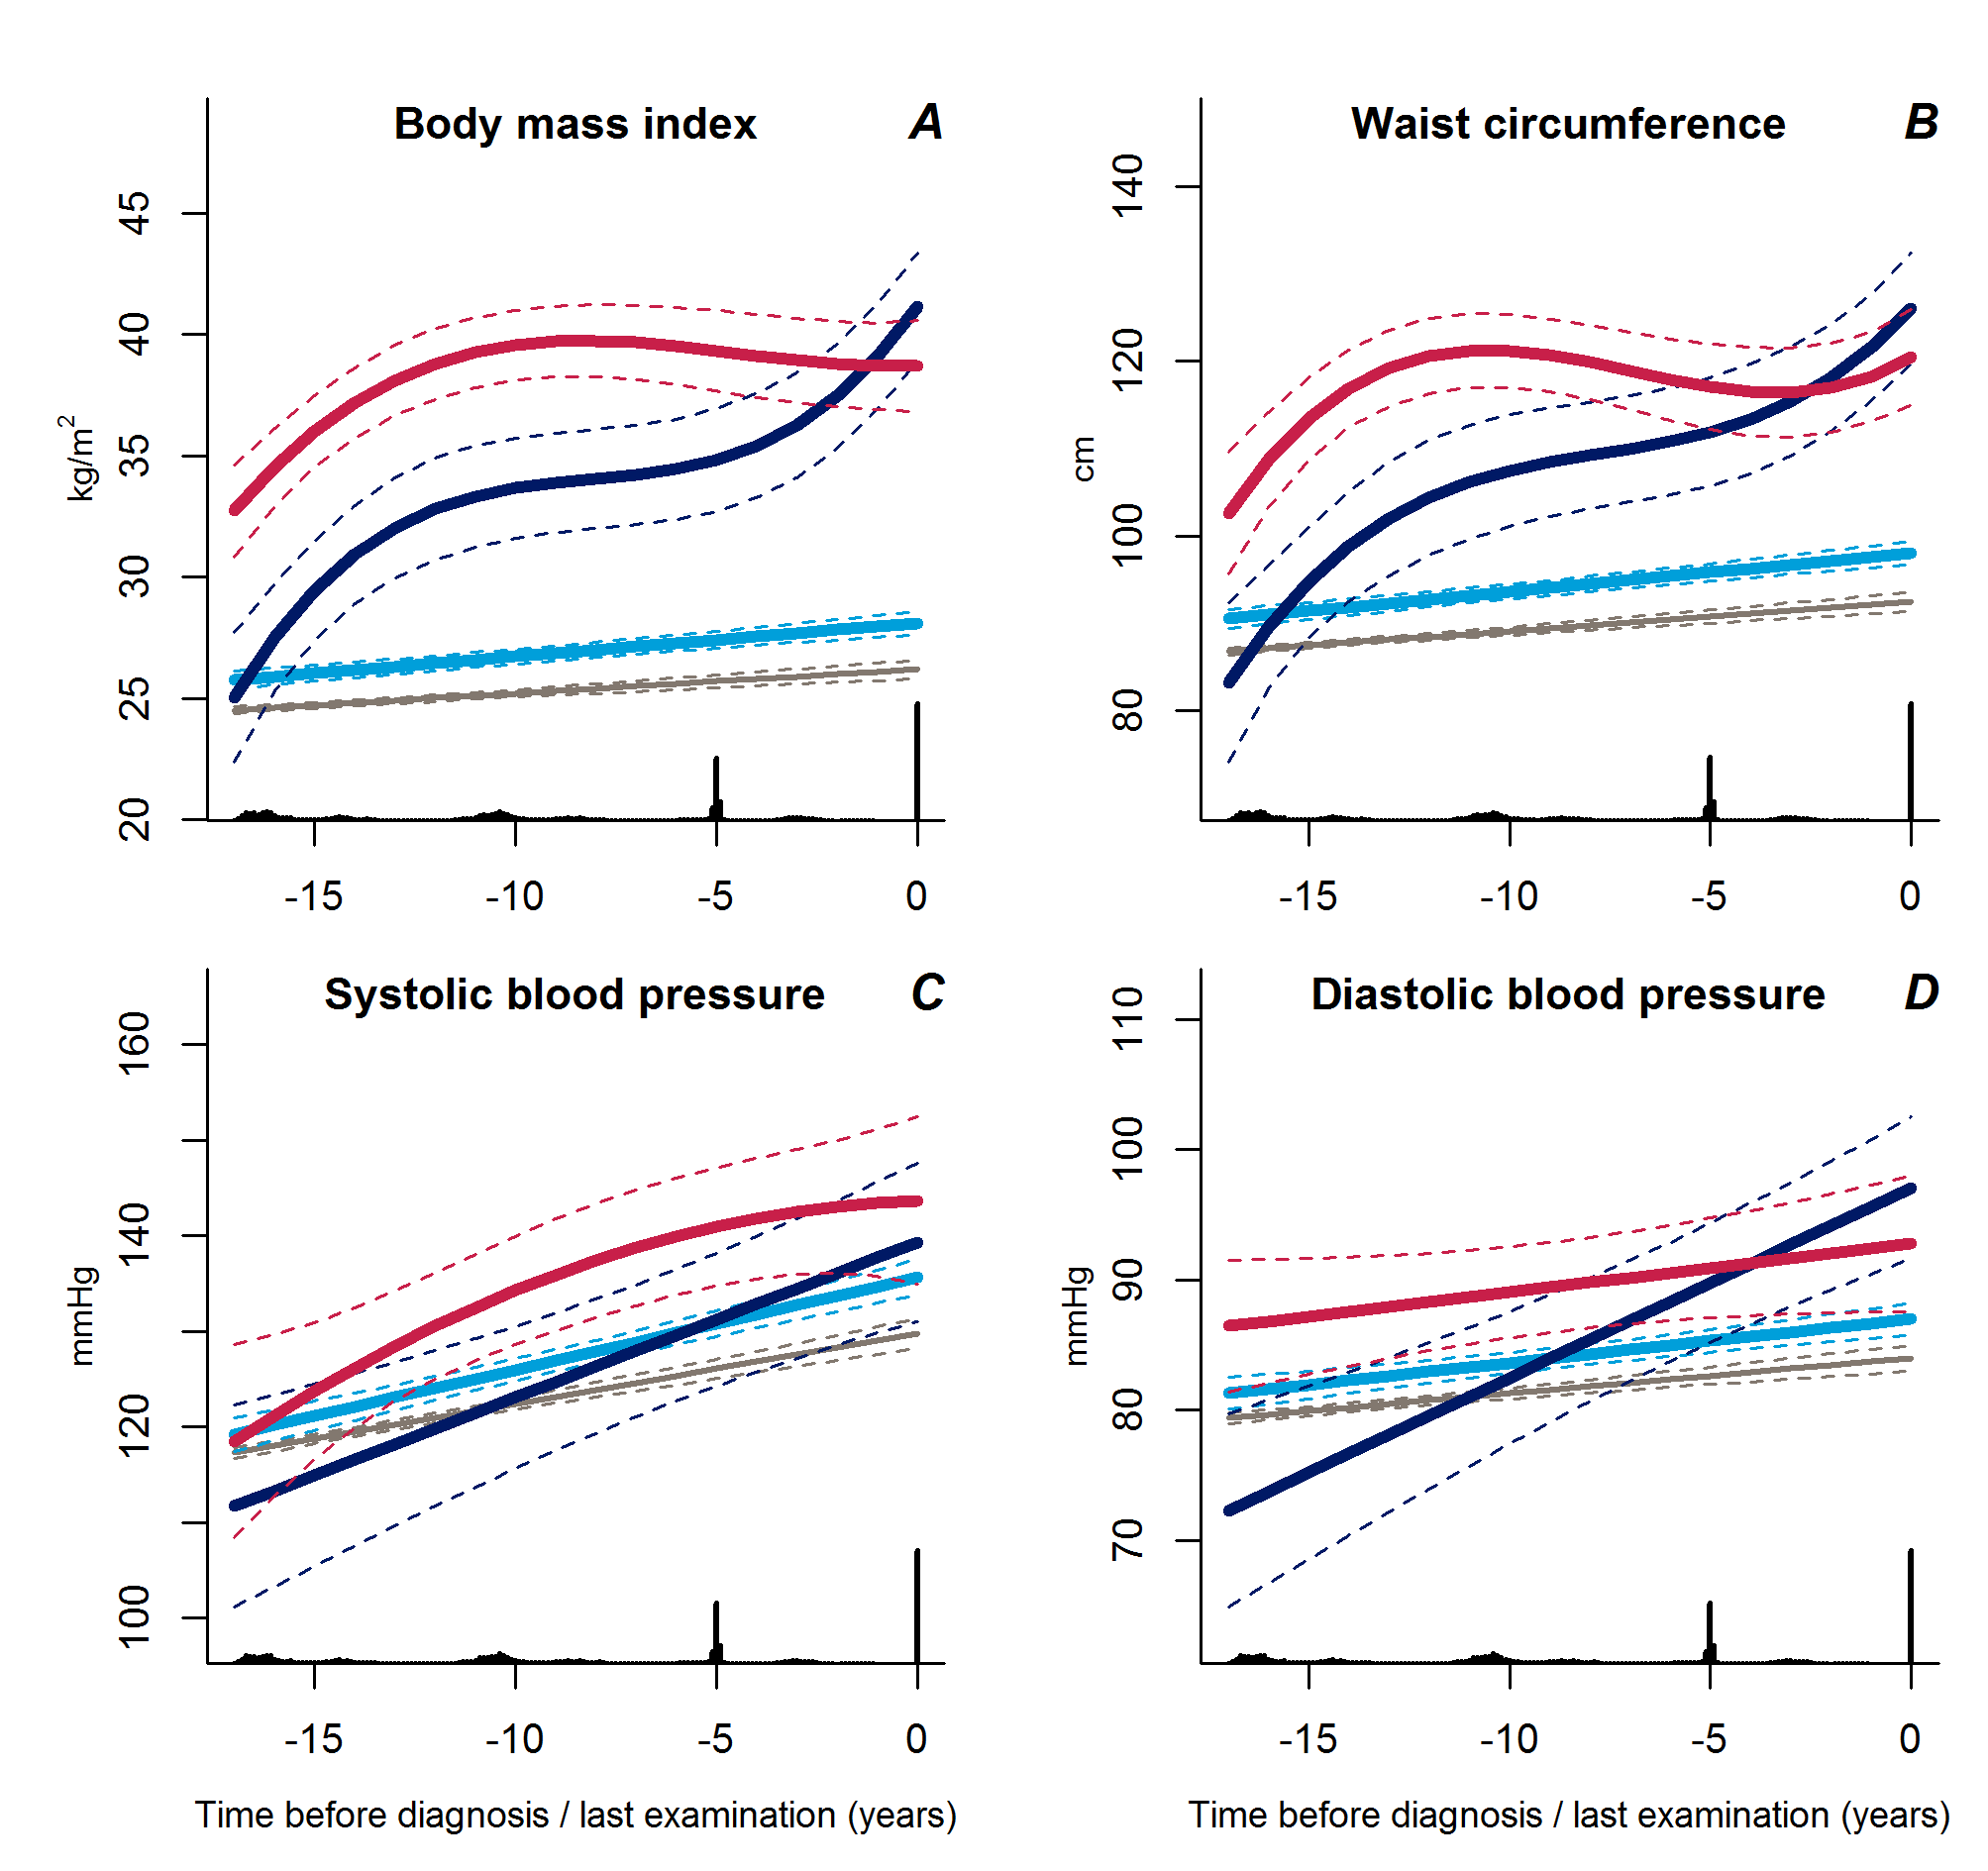 Trajectories for a hypothetical male of 60 years at time 0 of body mass index (A), waist circumference (B), systolic blood pressure (C), and diastolic blood pressure (D) from 18 years before time of diagnosis/last examination.